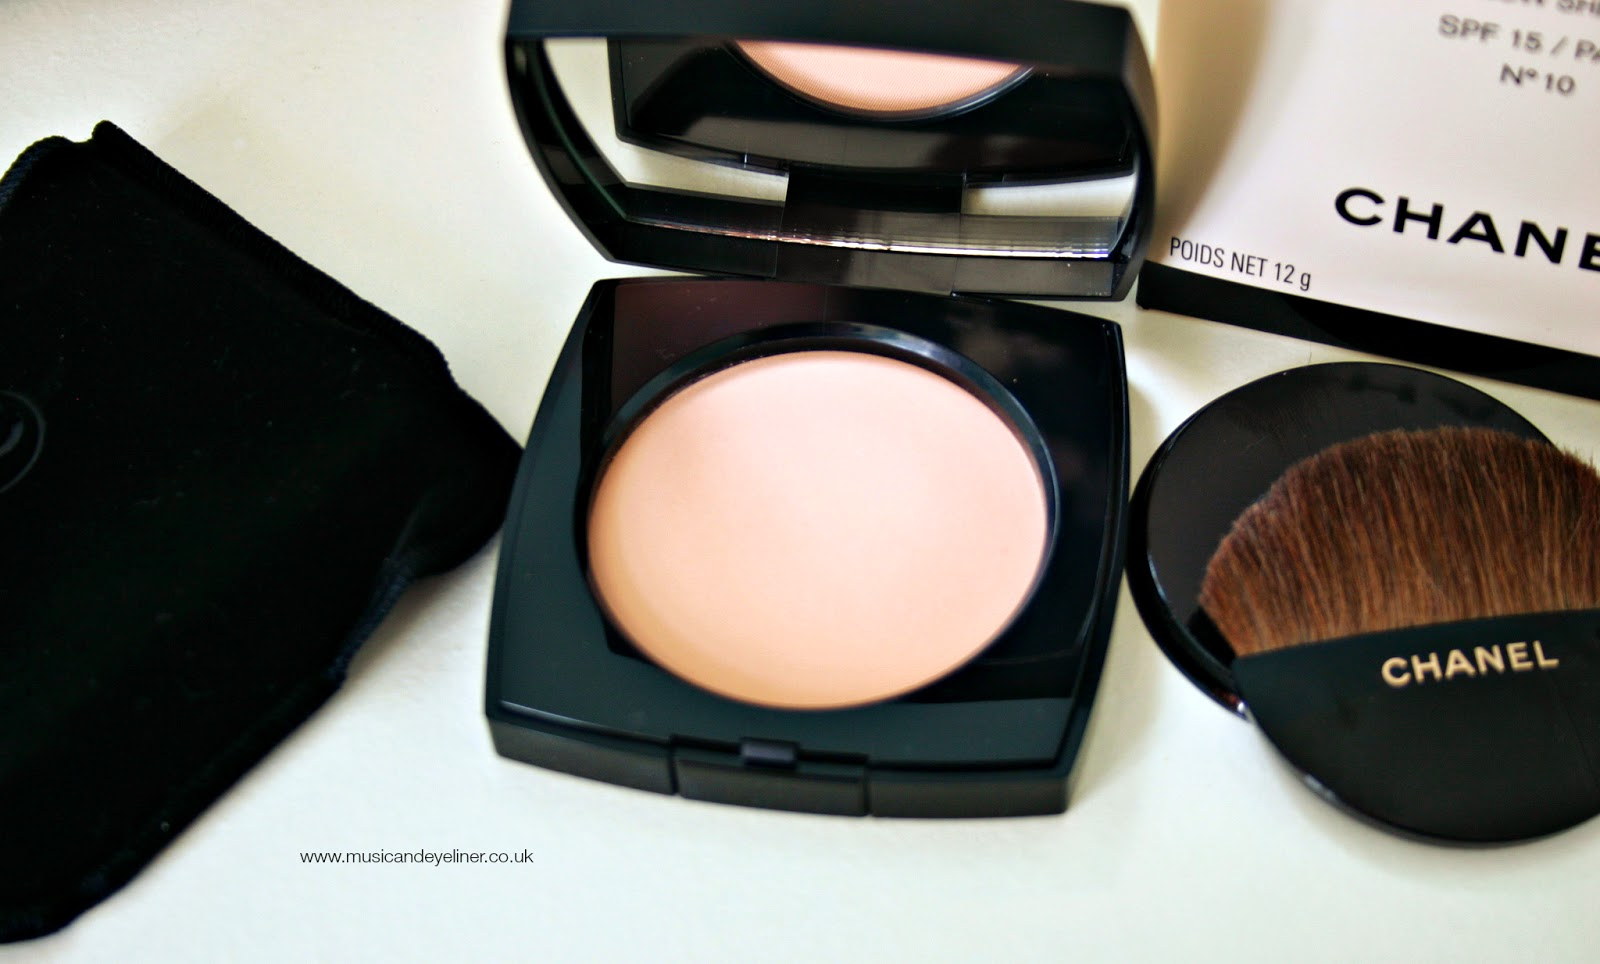 photograph of chanel les beiges powder in shade 10 on www.musicandeyeliner.co.uk